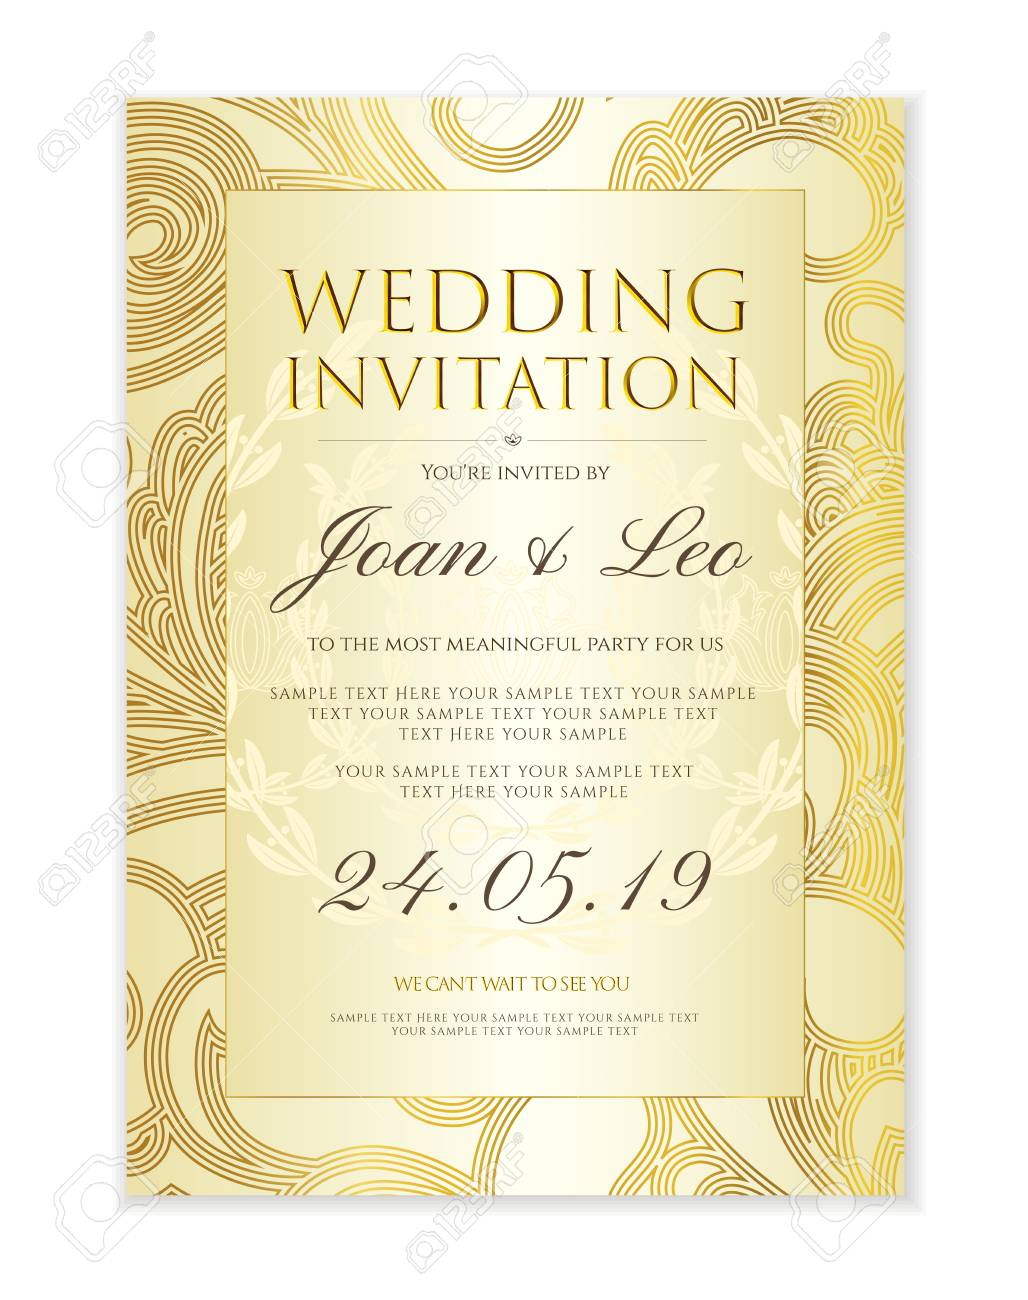 Wedding Invitation Design Template (Save The Date Card). Classic ...